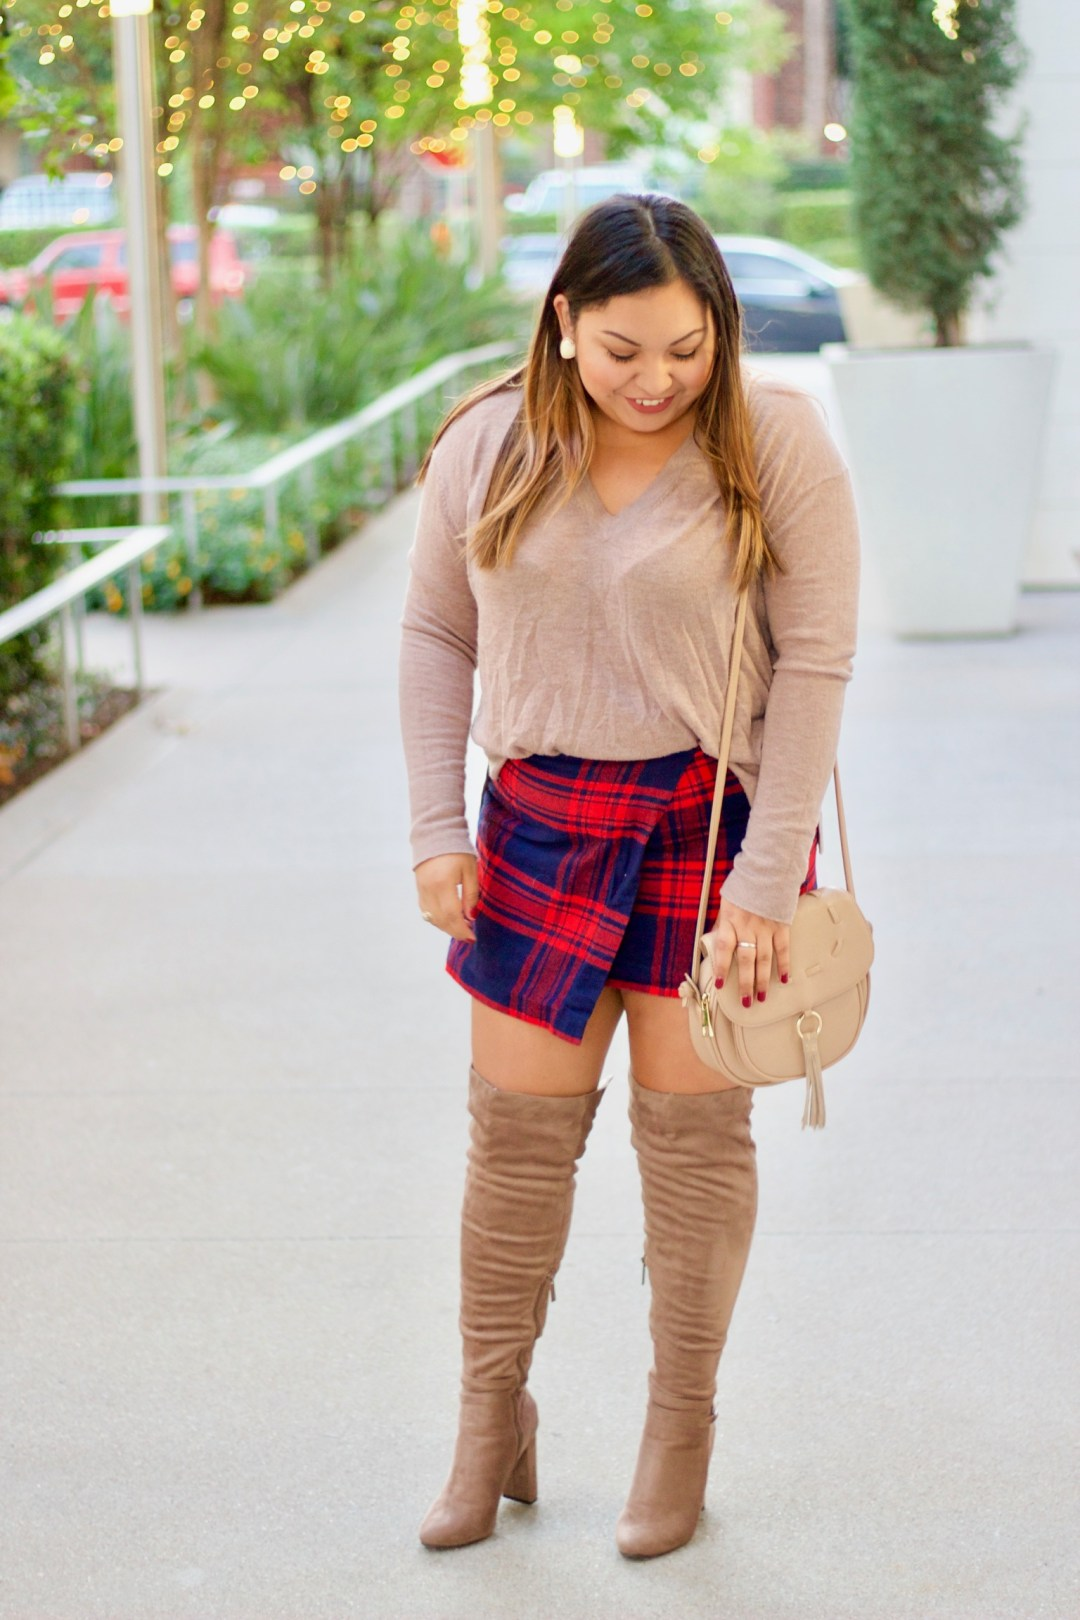 Lovelysilvia - Plaid Skirts for Fall u0026 Winter | Lovely Silvia